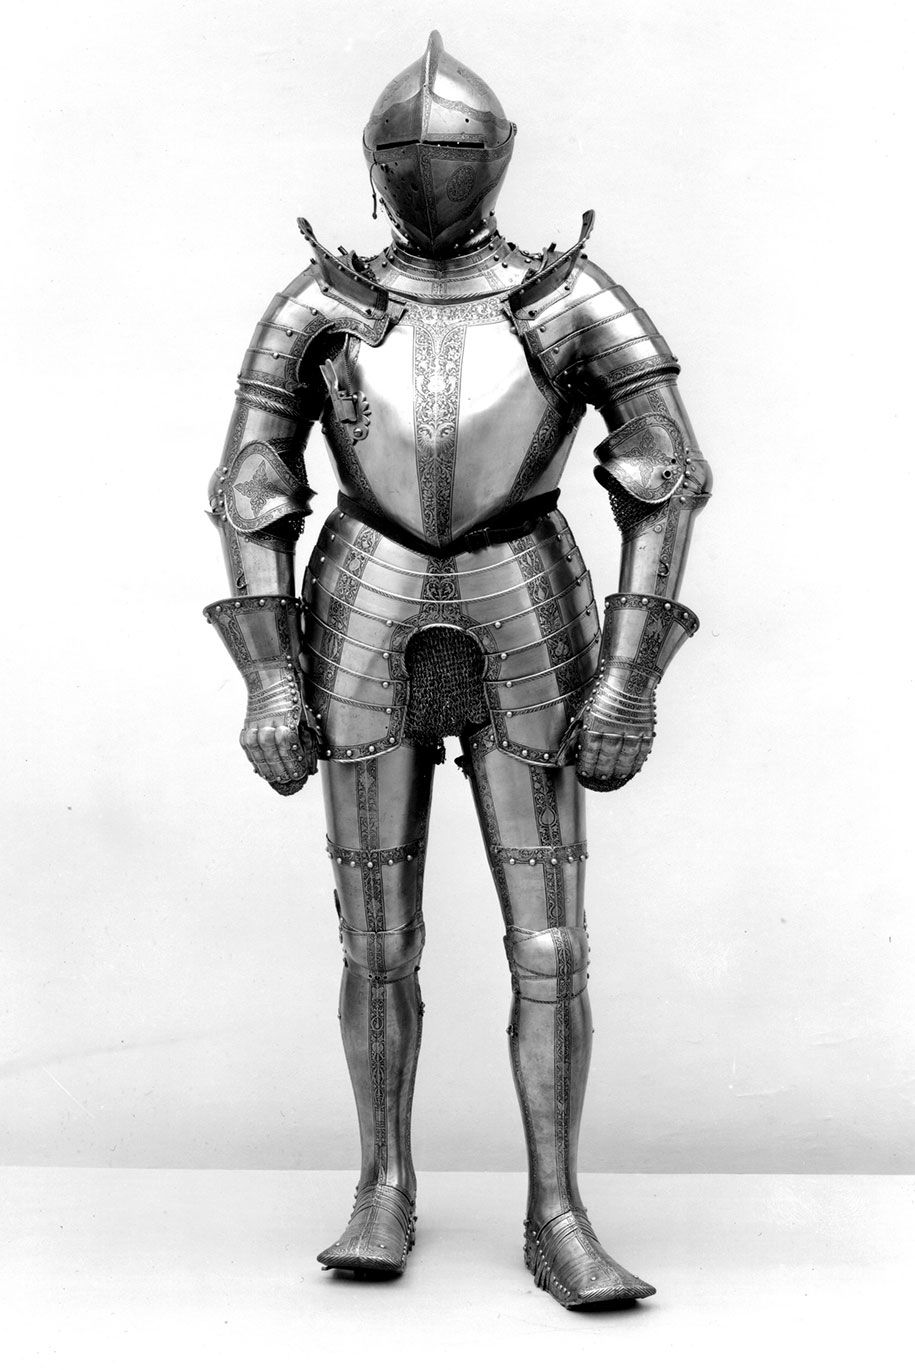 375 000 Pieces Of Classic Art Made Available For Free By Met Museum Medieval Knight Armor Historical Armor Armor